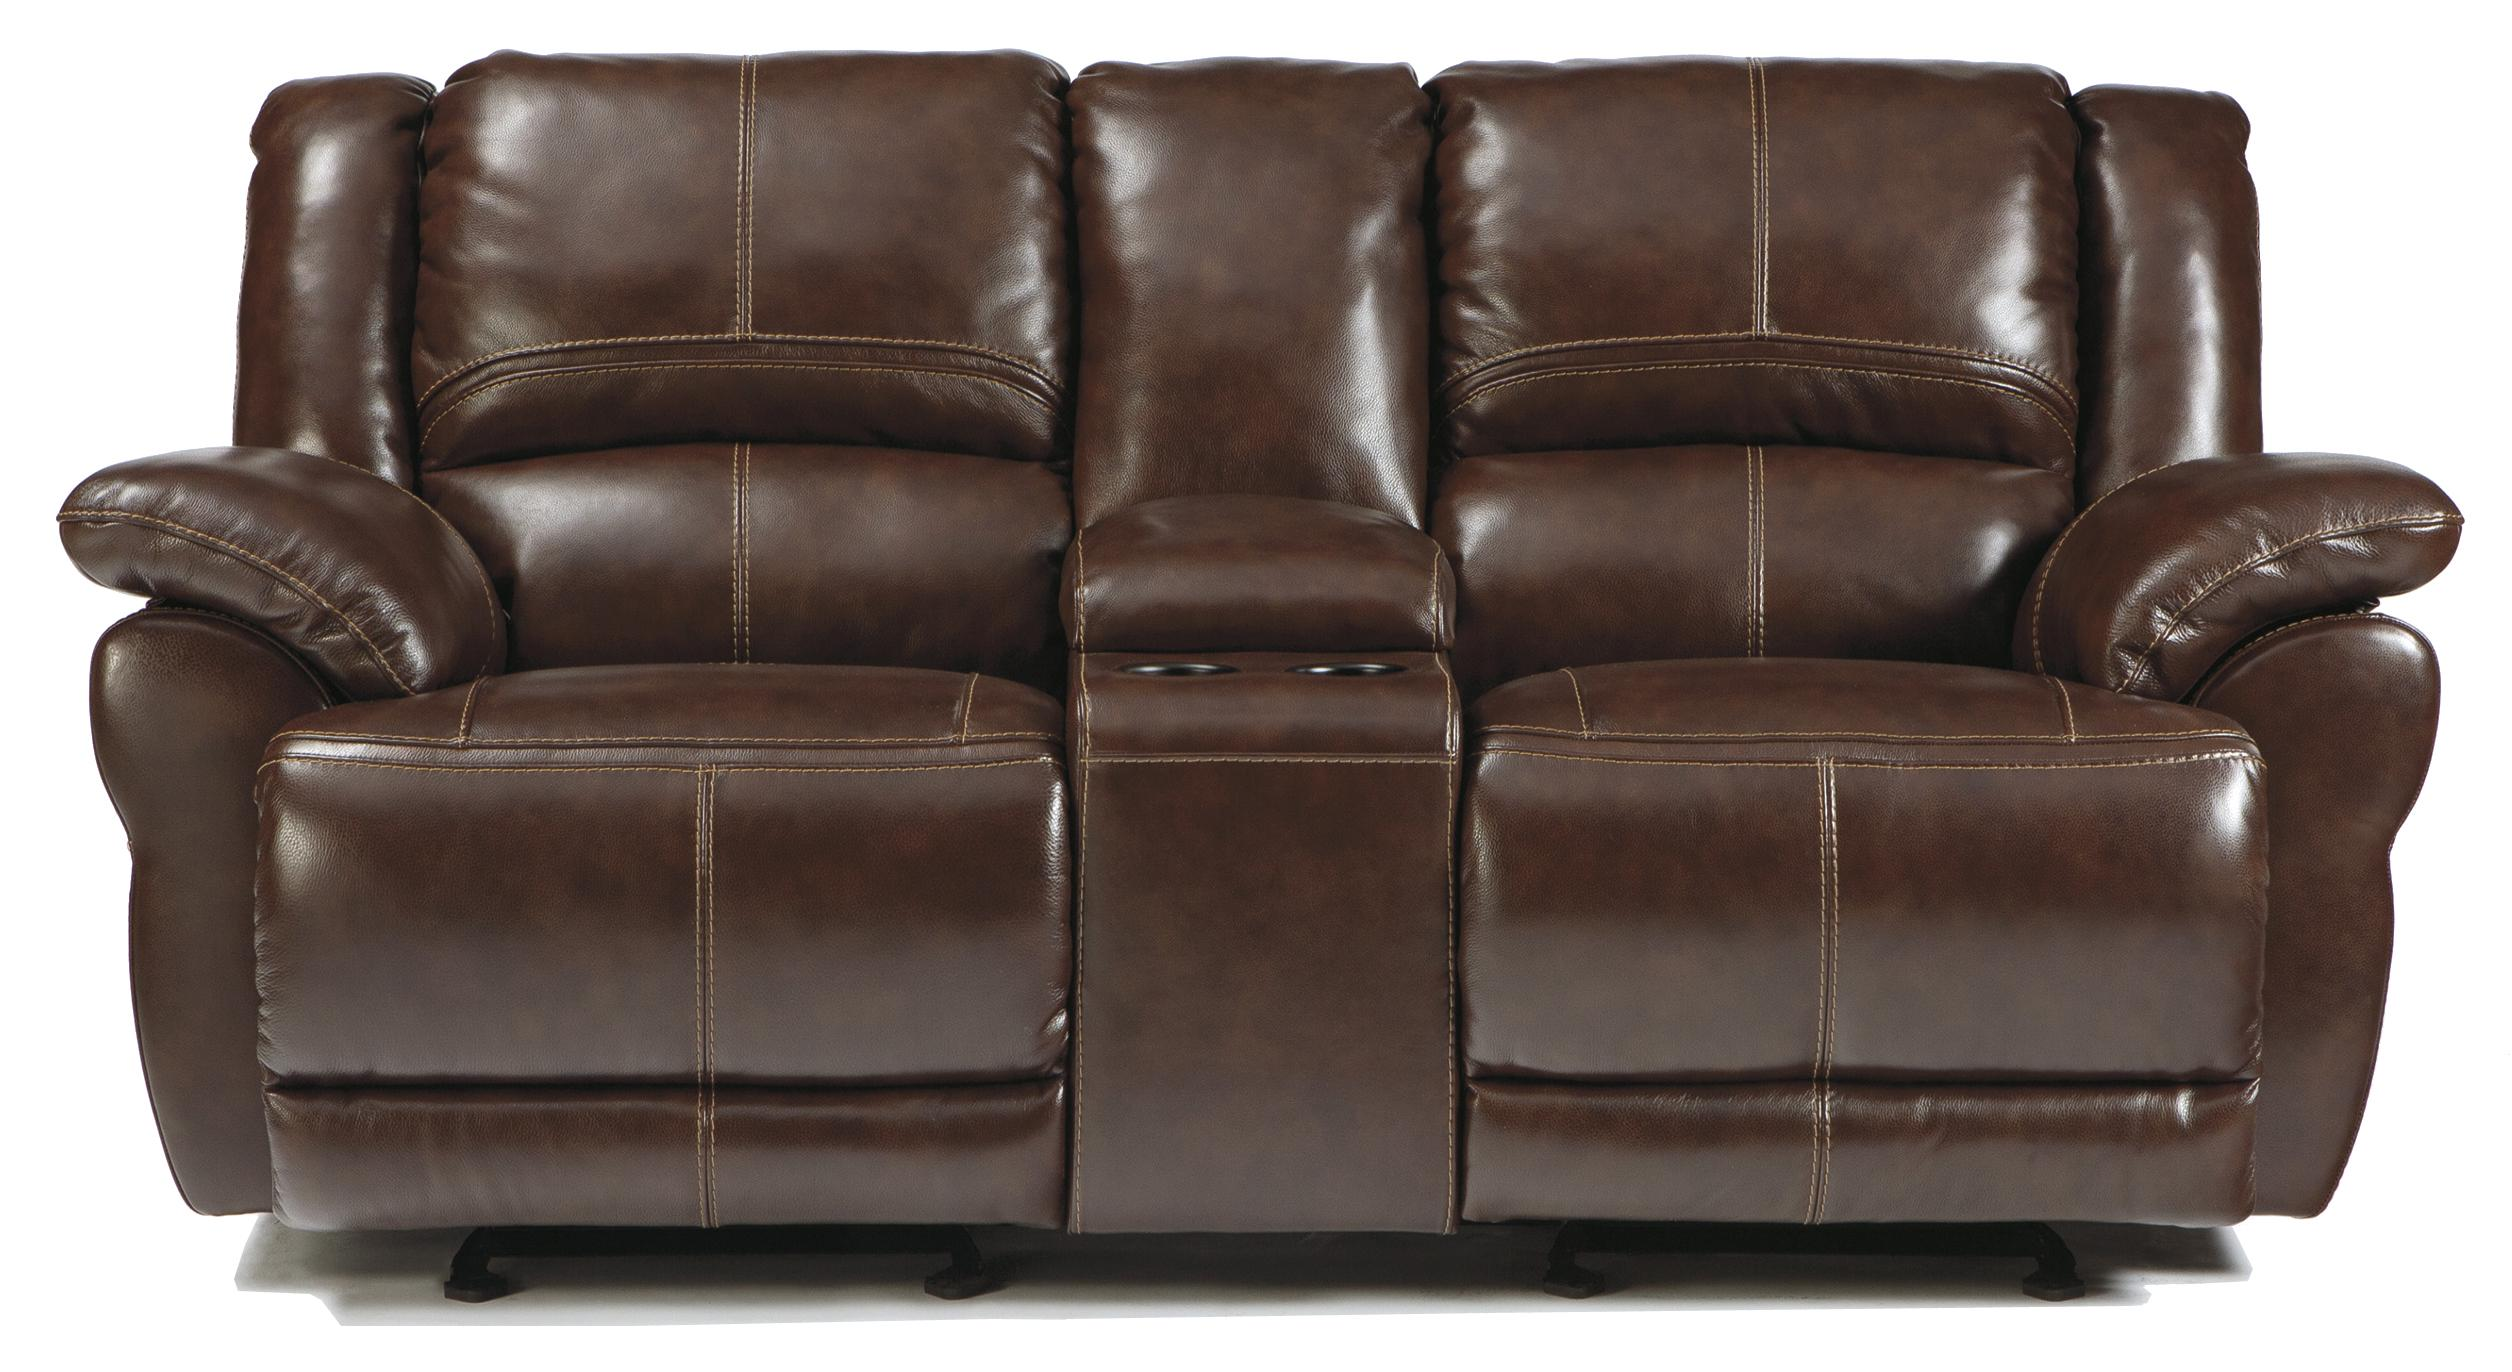 Signature Design by Ashley Lenoris - Coffee Glider Reclining Power Loveseat w/ Console - Item Number: U9890191